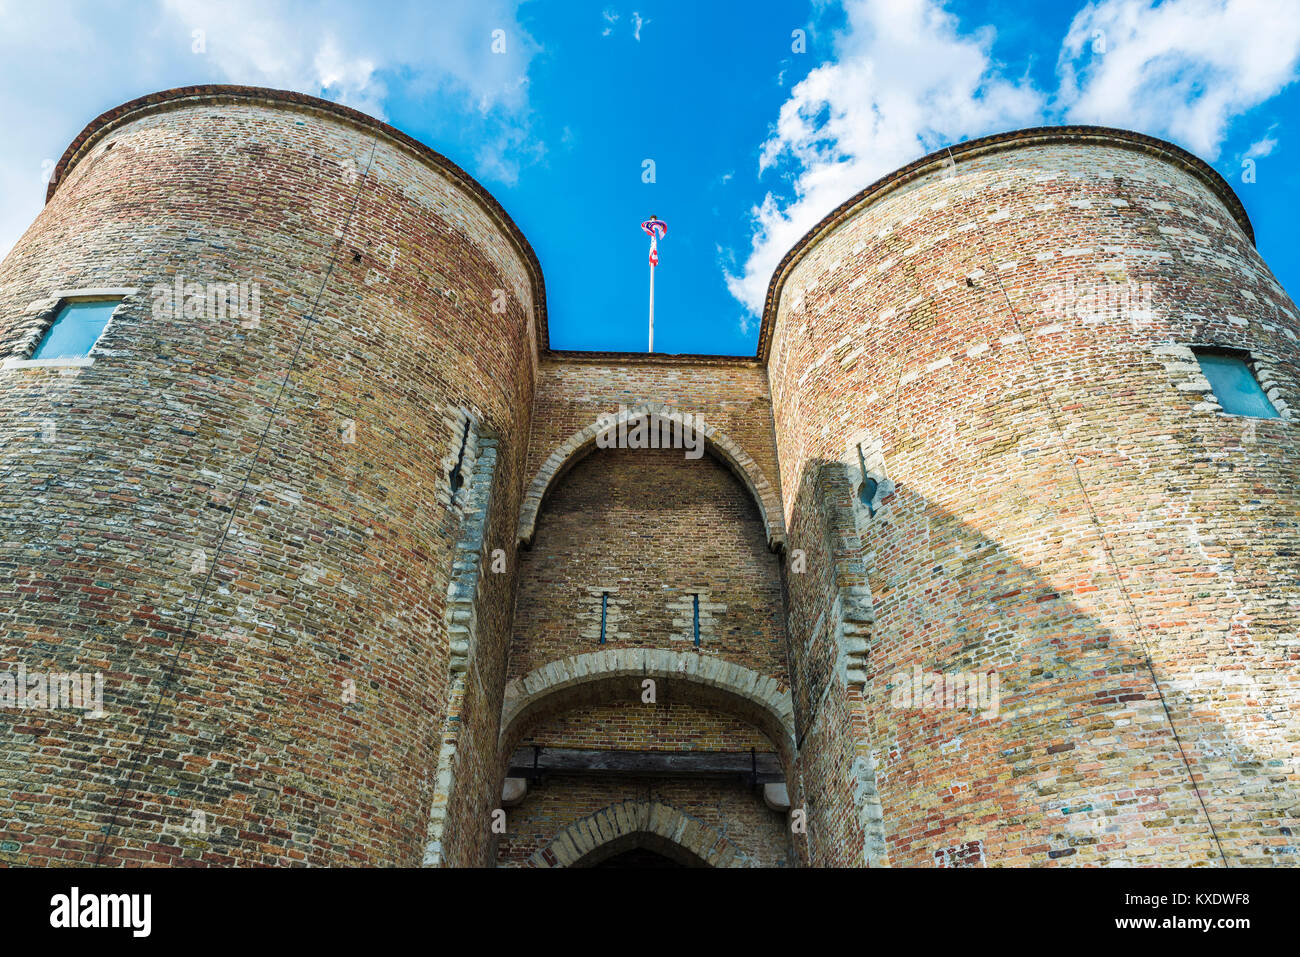 Gentpoort (Gate of Ghent) in the medieval city of Bruges, Belgium Stock Photo